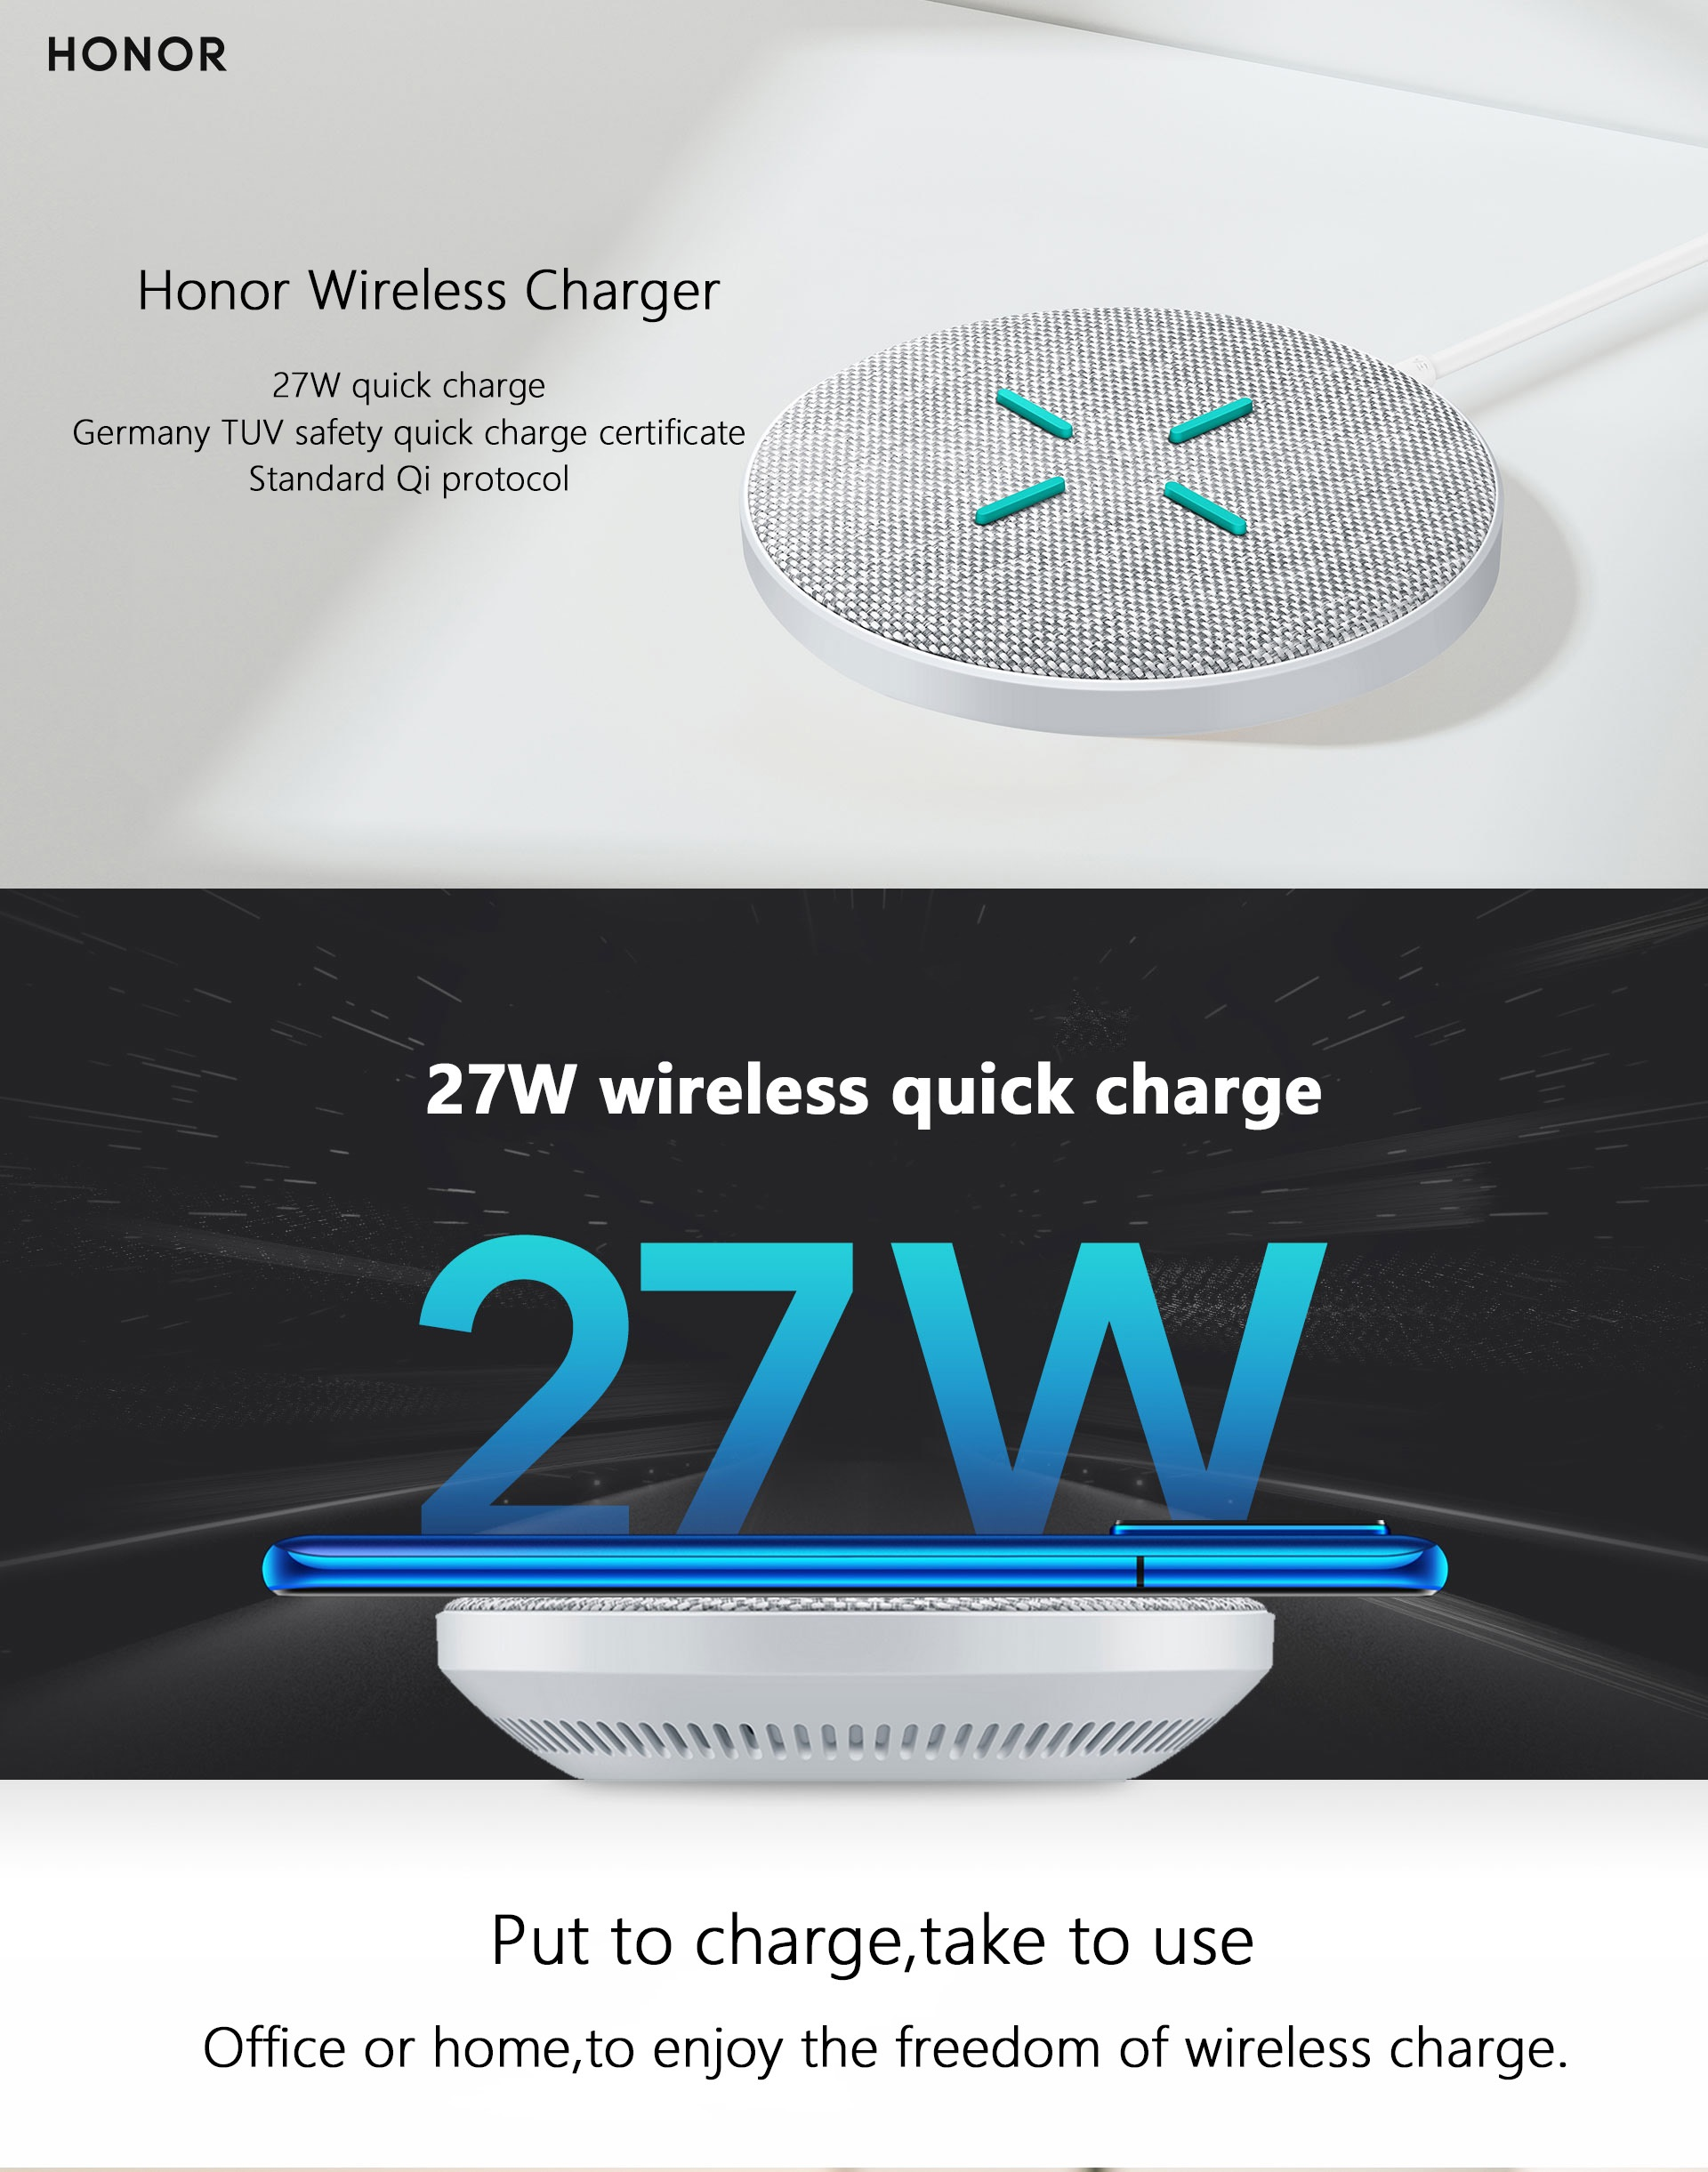 Huawei Honor AP61 SuperCharge Fast Wireless Charger - 27W Pakistan